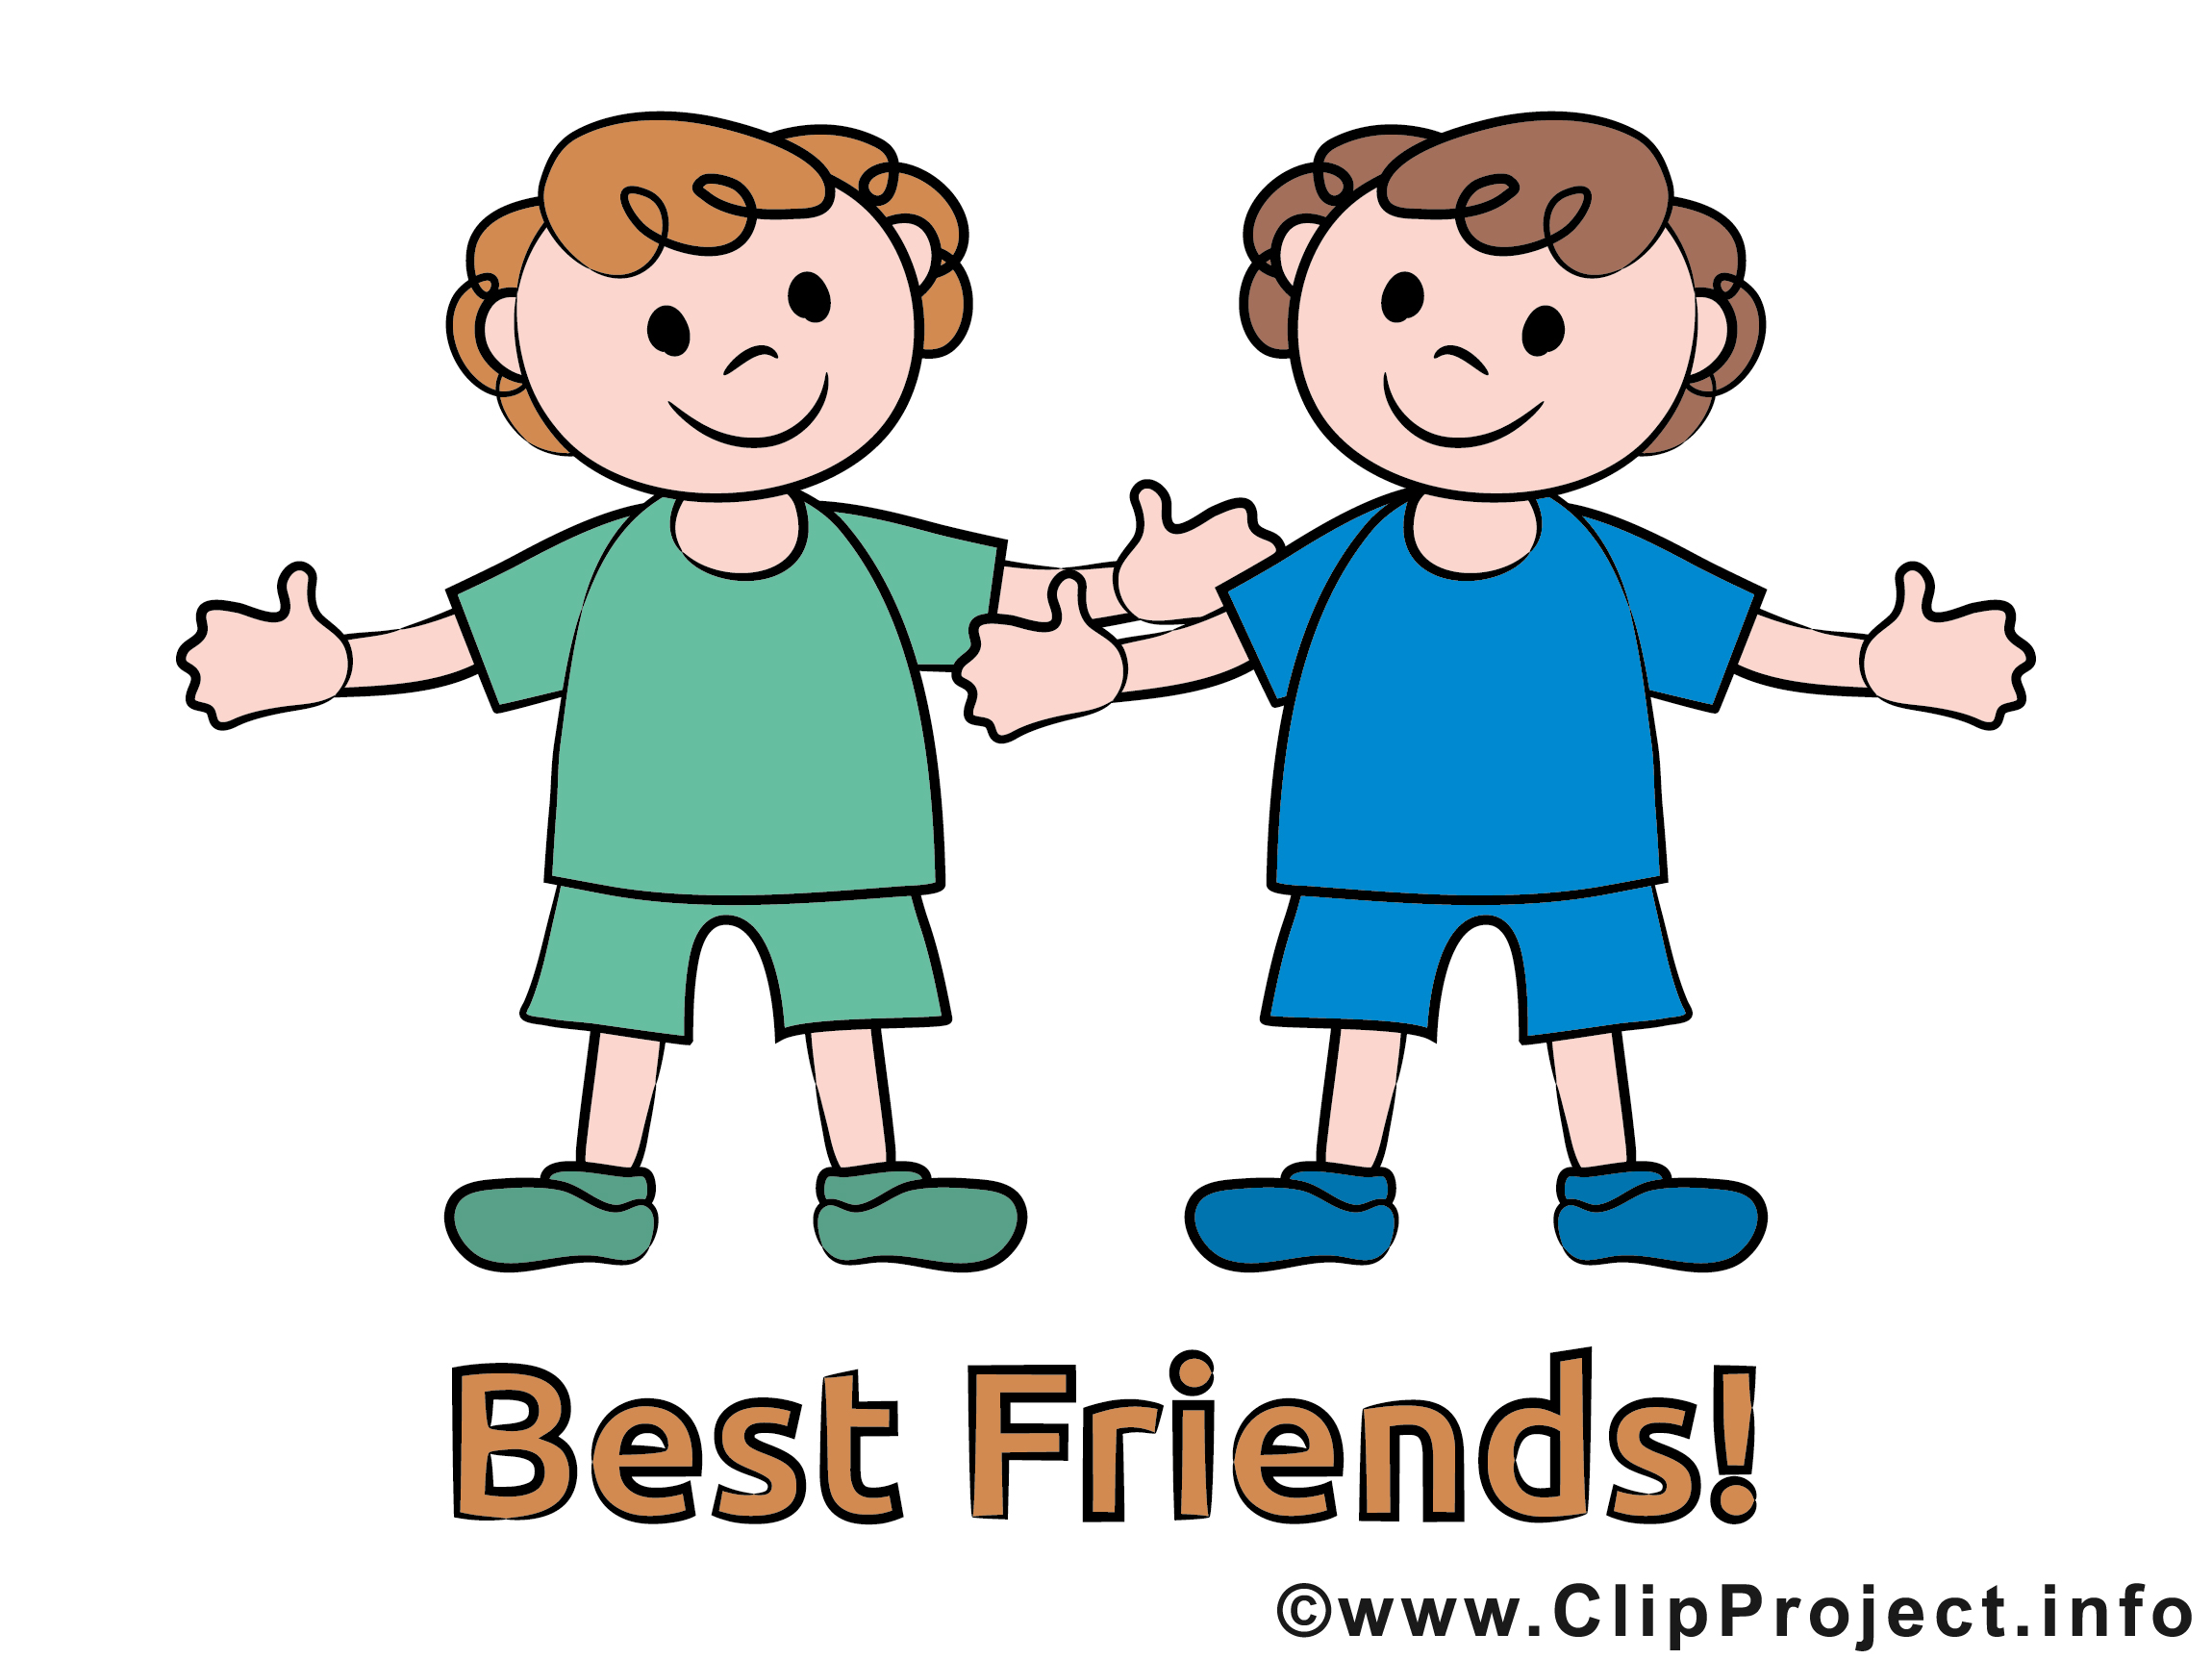 Gute freunde clipart image black and white download Gute freunde clipart - ClipartFest image black and white download